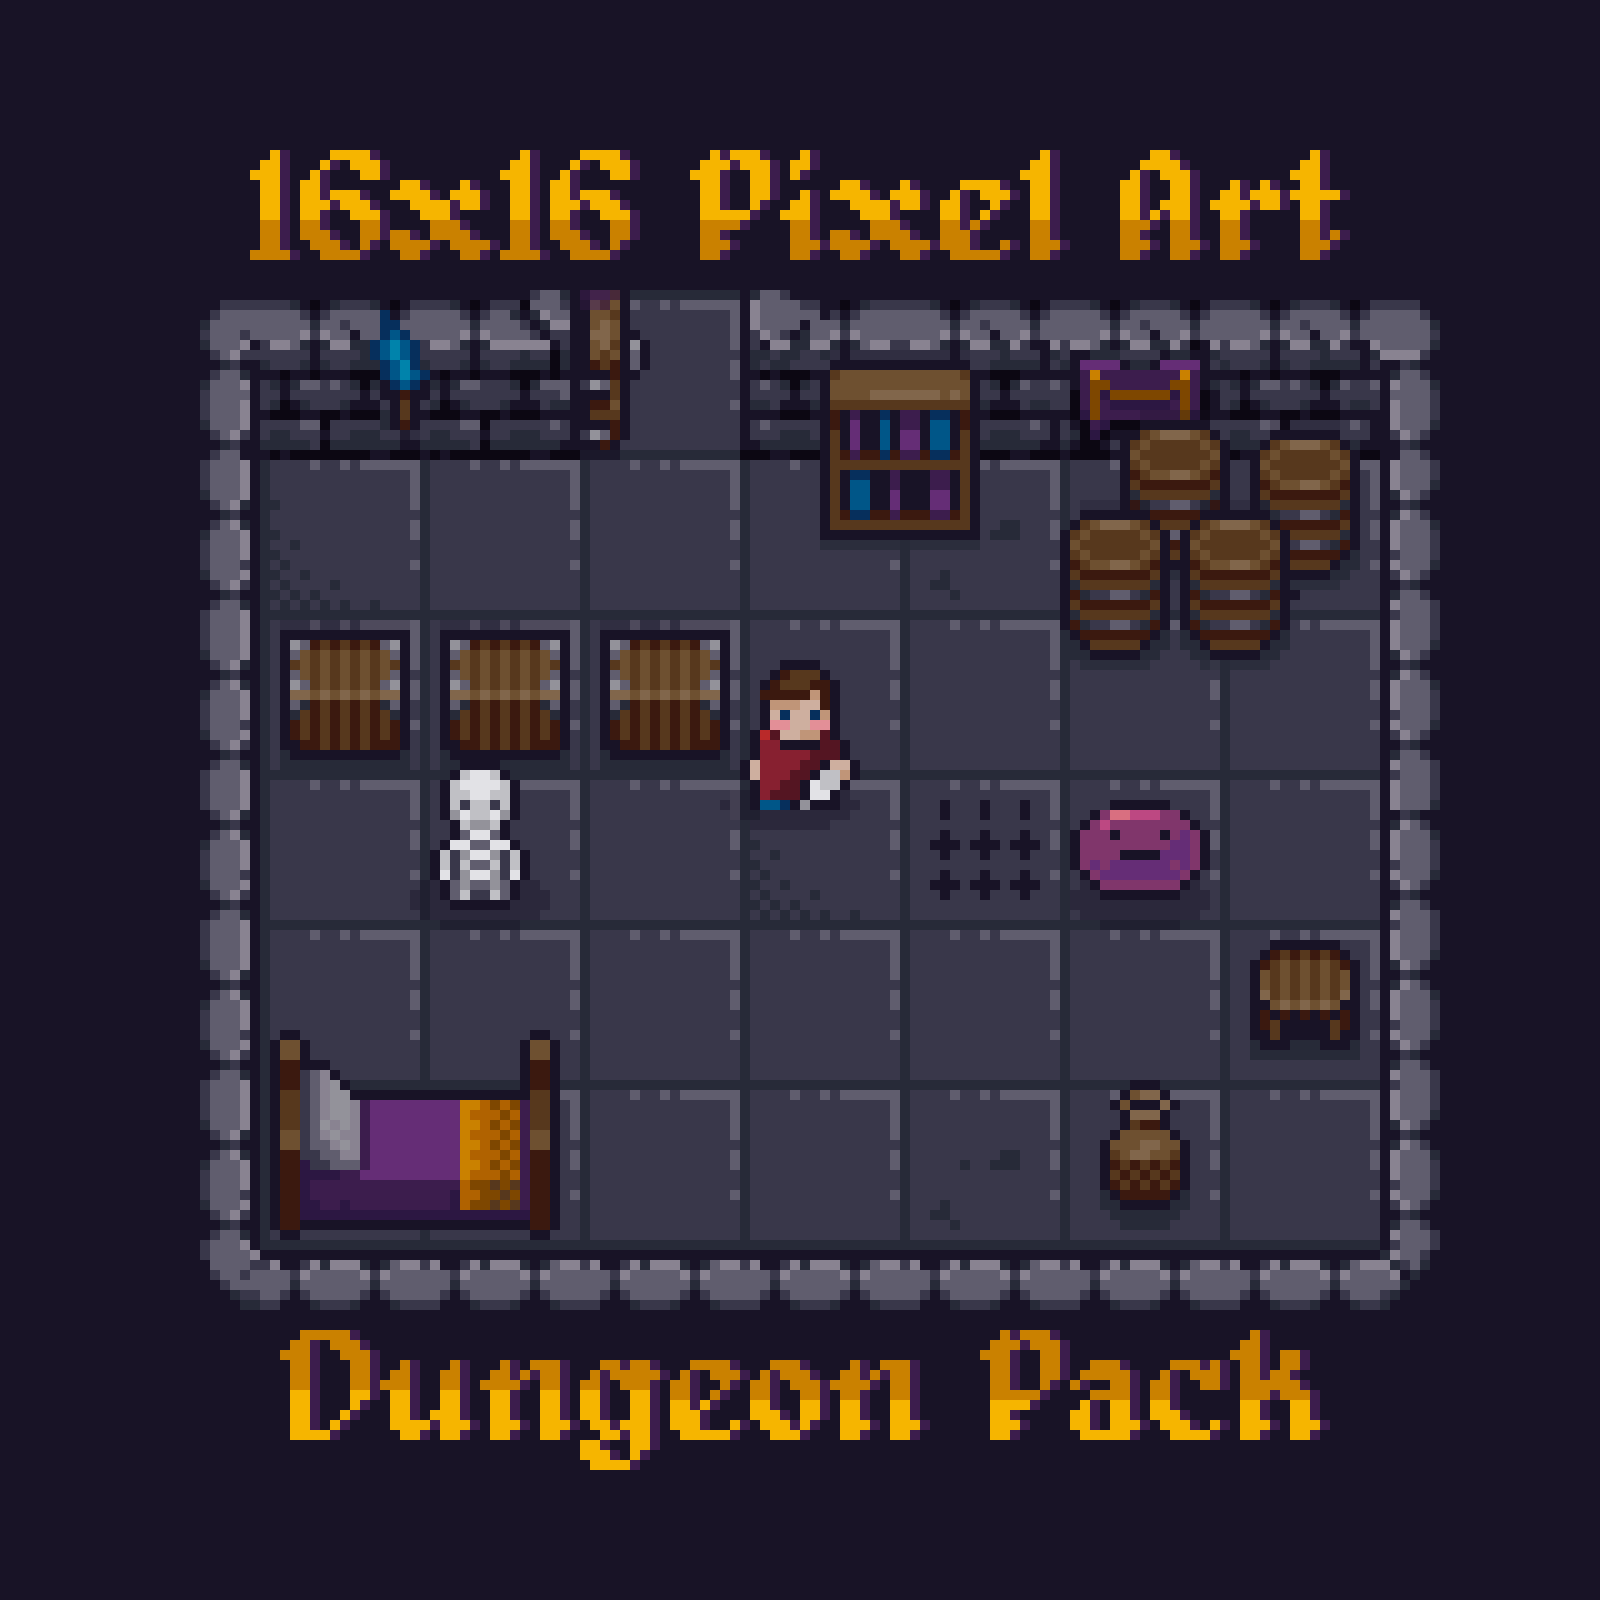 16x16 Pixel Art Dungeon Pack Icon